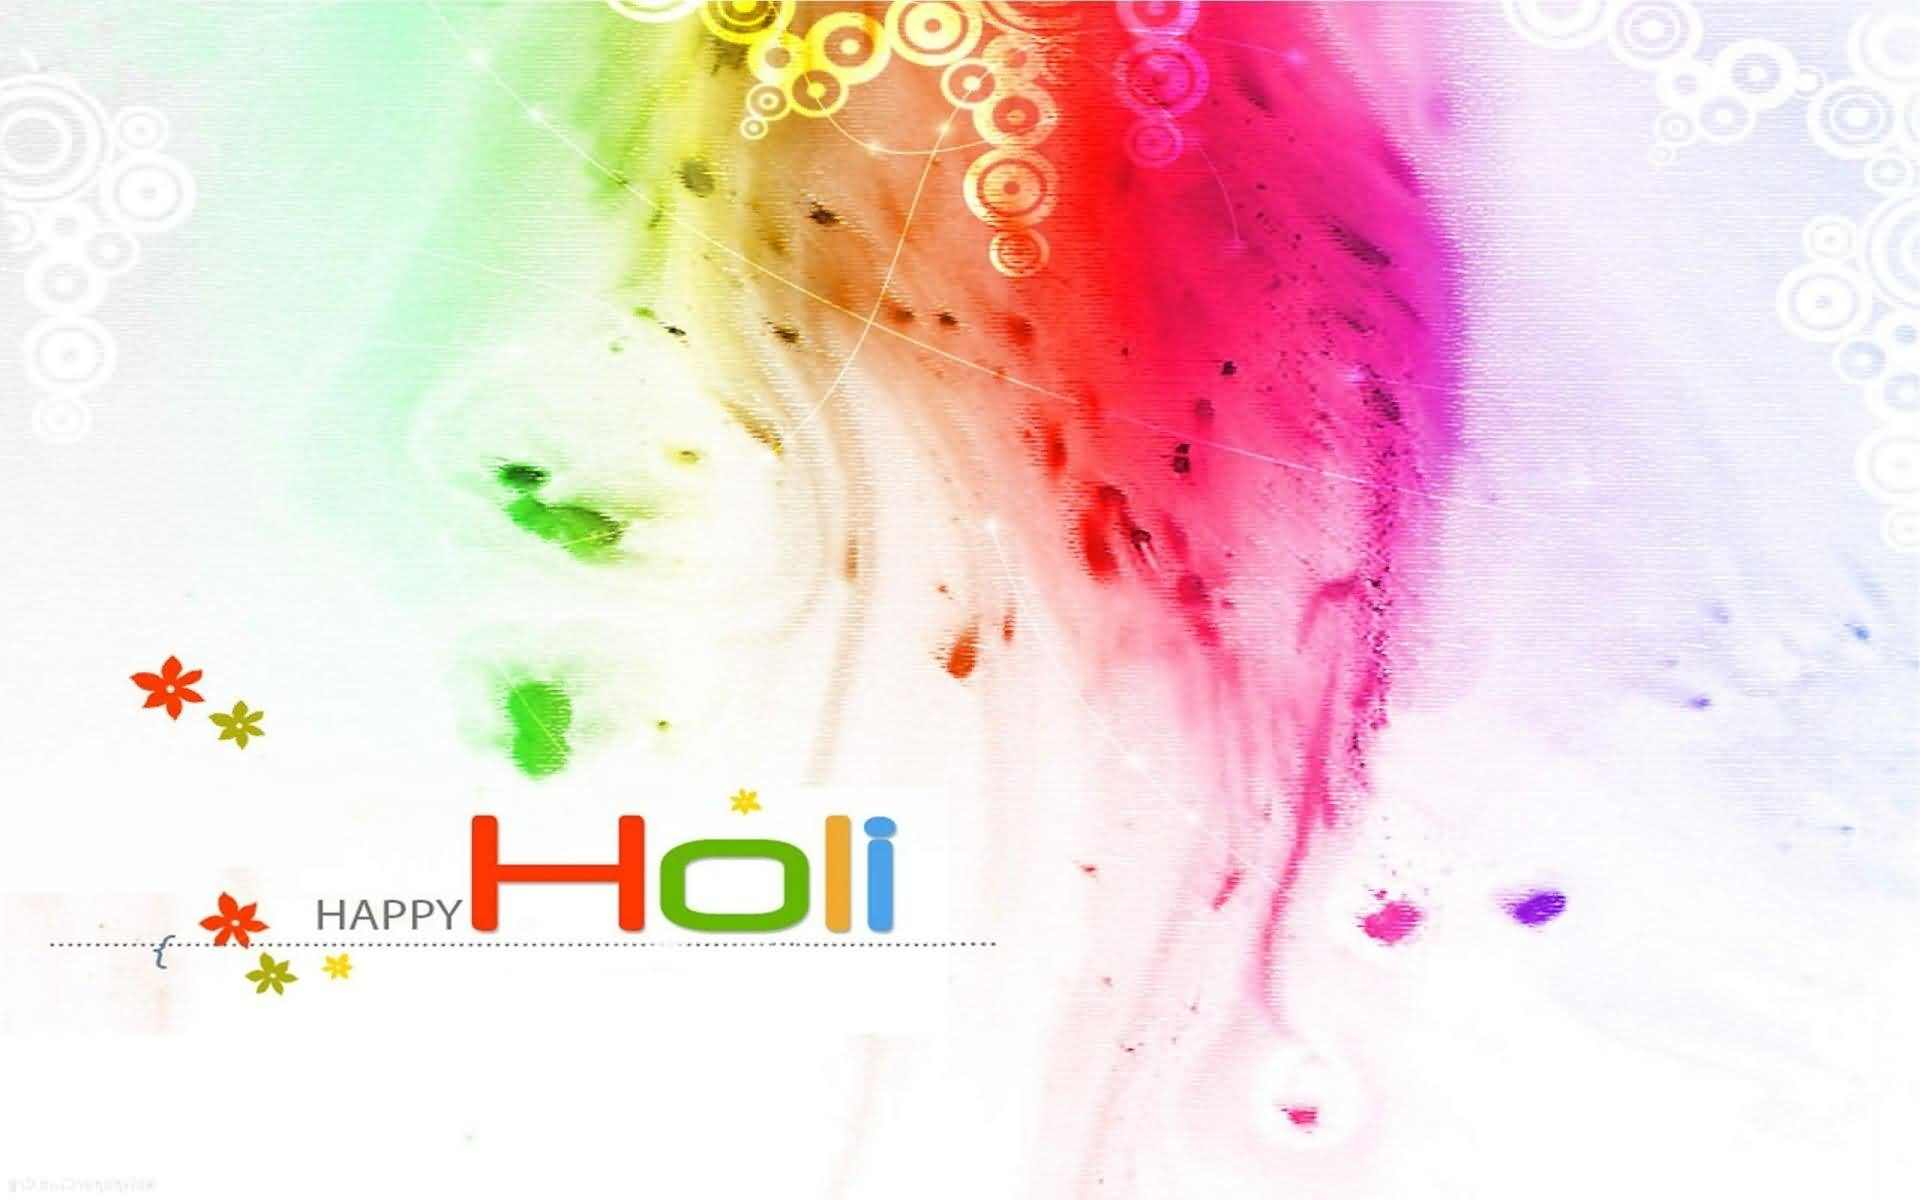 Happy holi greeting to friend wishes image nicewishes 28 holi wishes kristyandbryce Choice Image